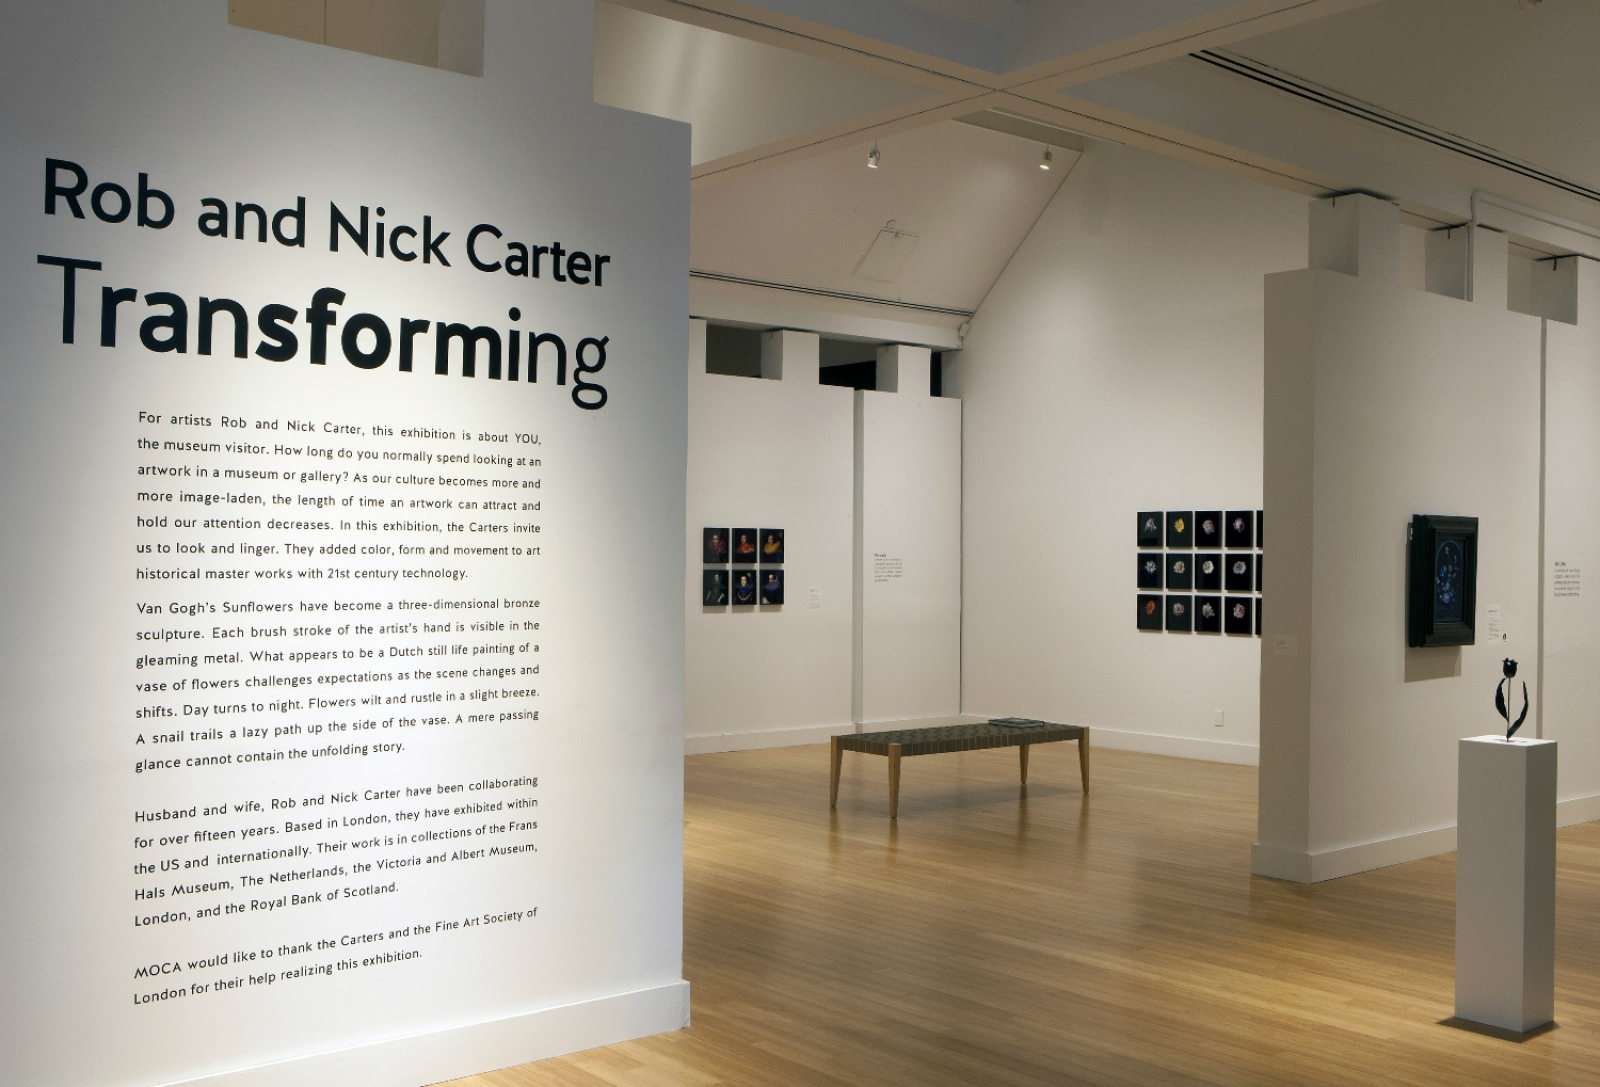 Rob and Nick Carter - Transforming, MOCA Virginia · © Copyright 2018